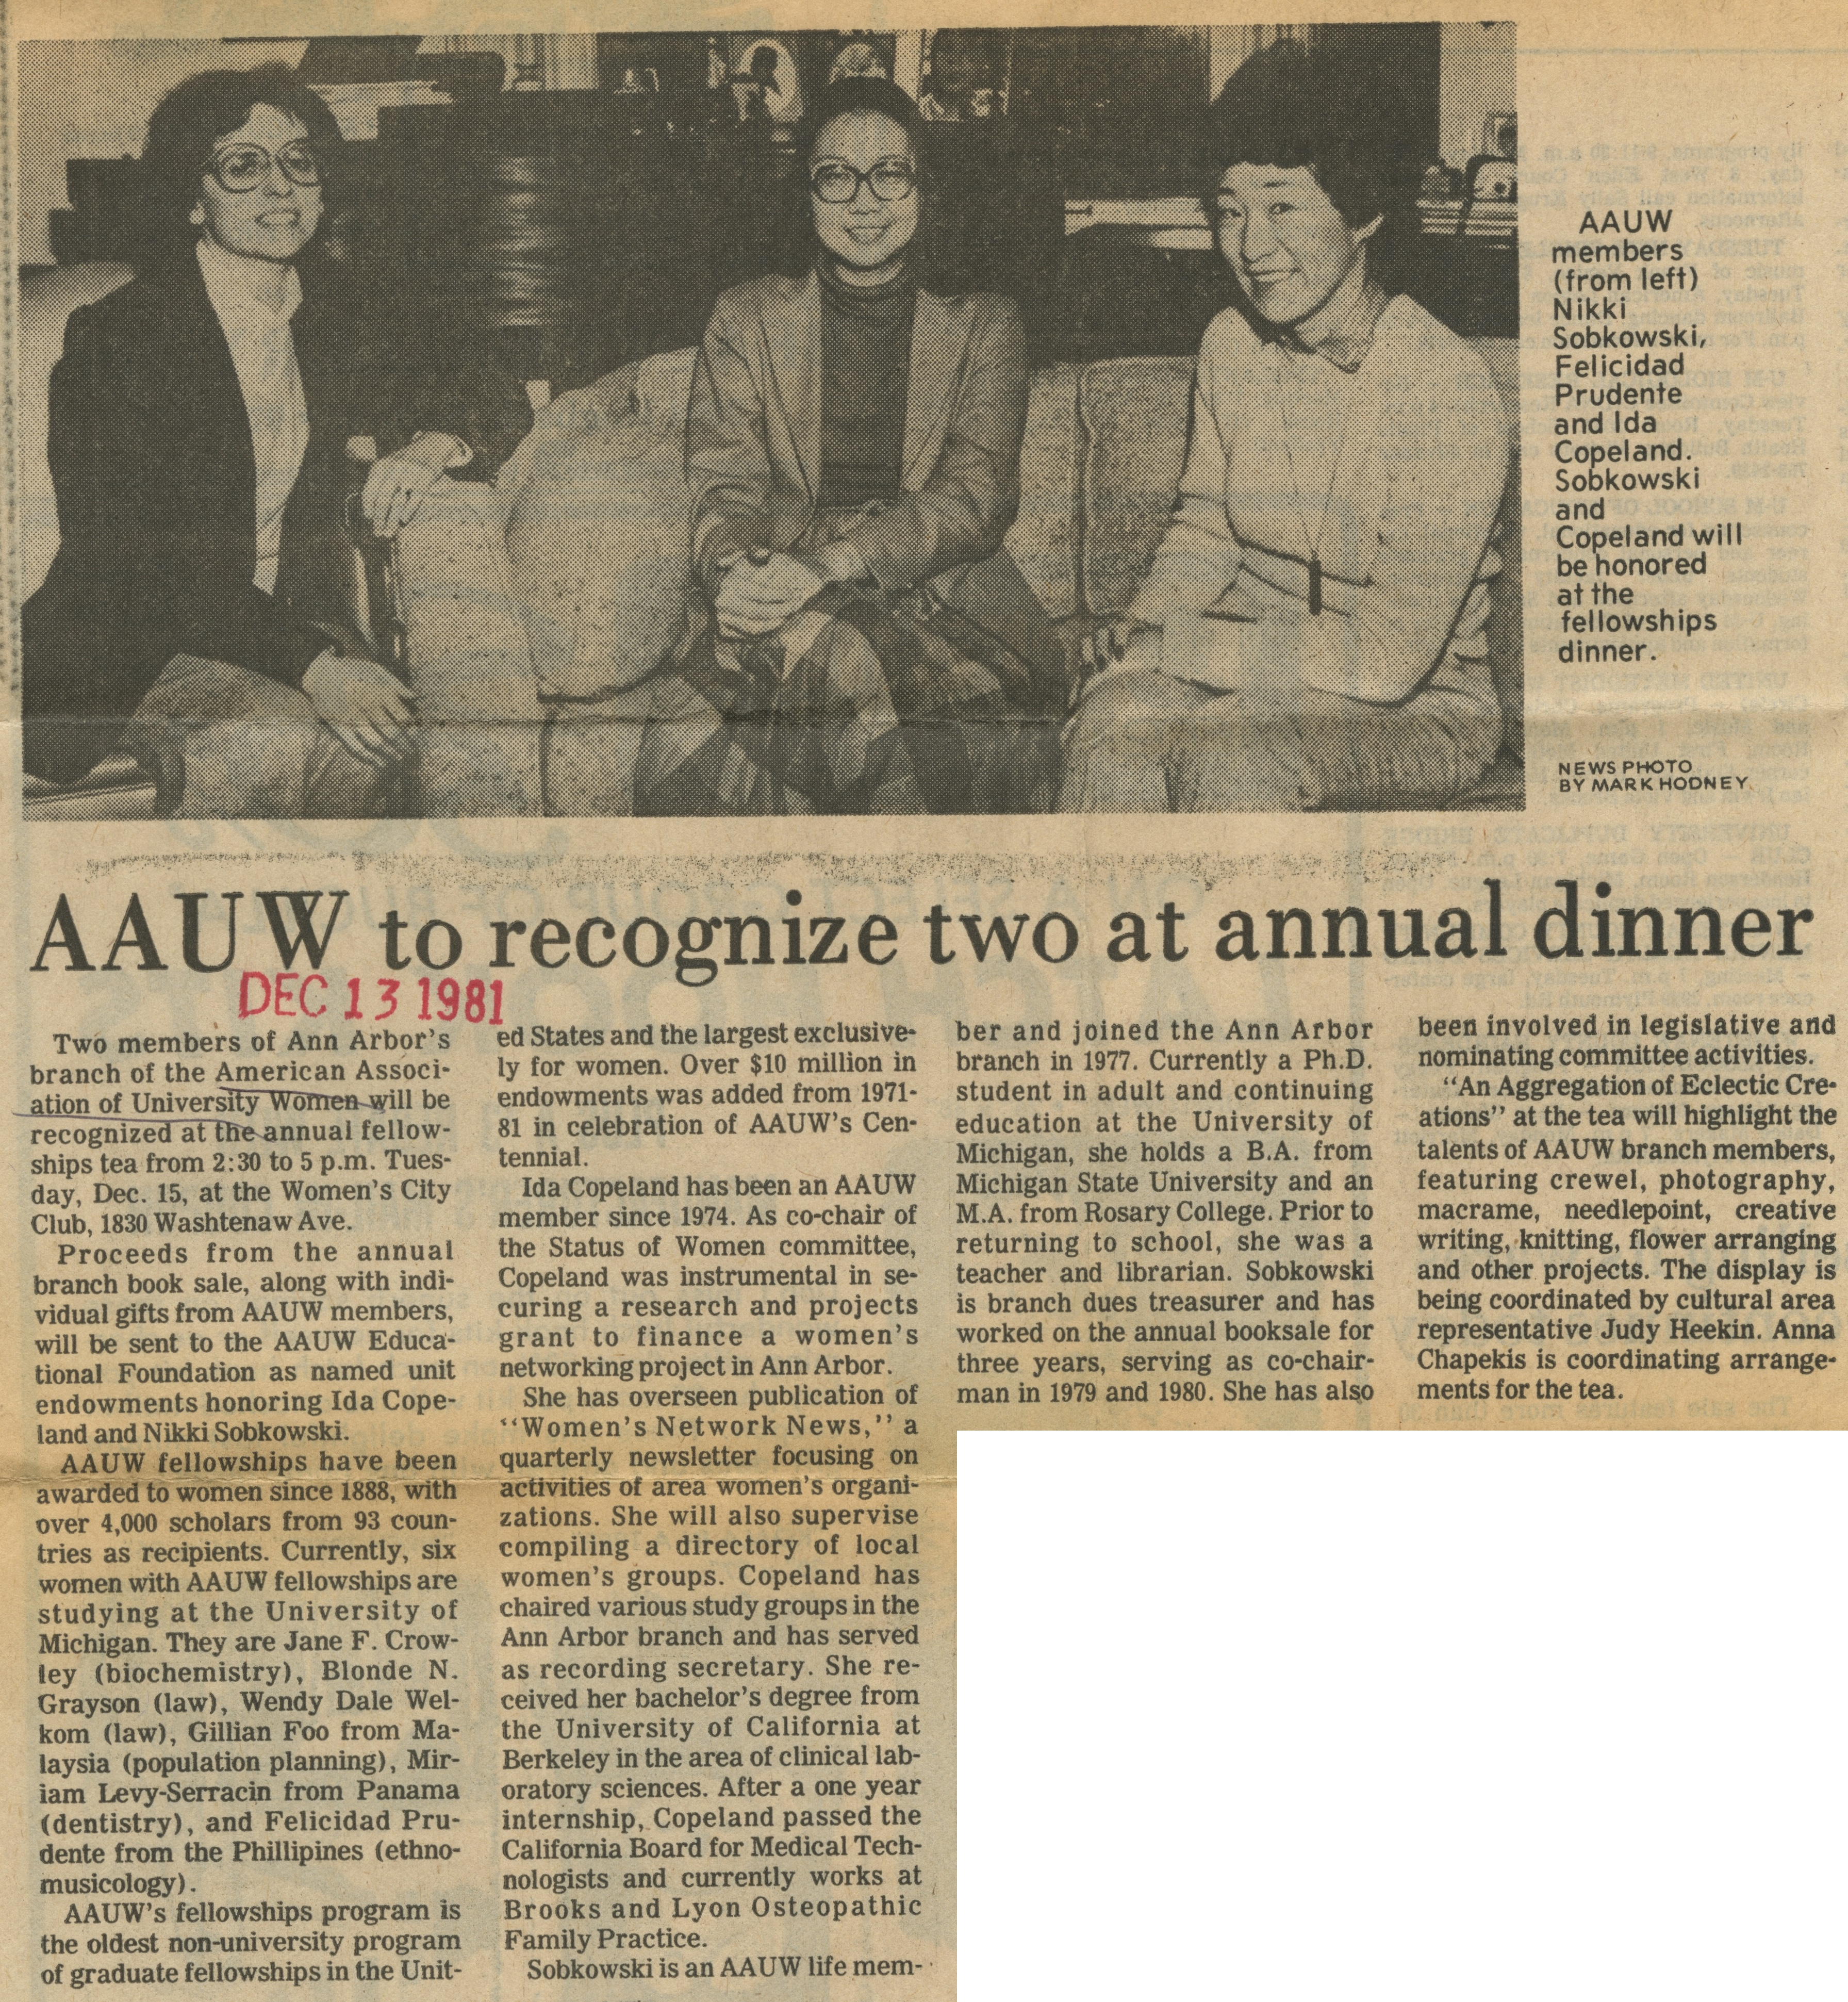 AAUW to recognize Two at Annual Dinner image